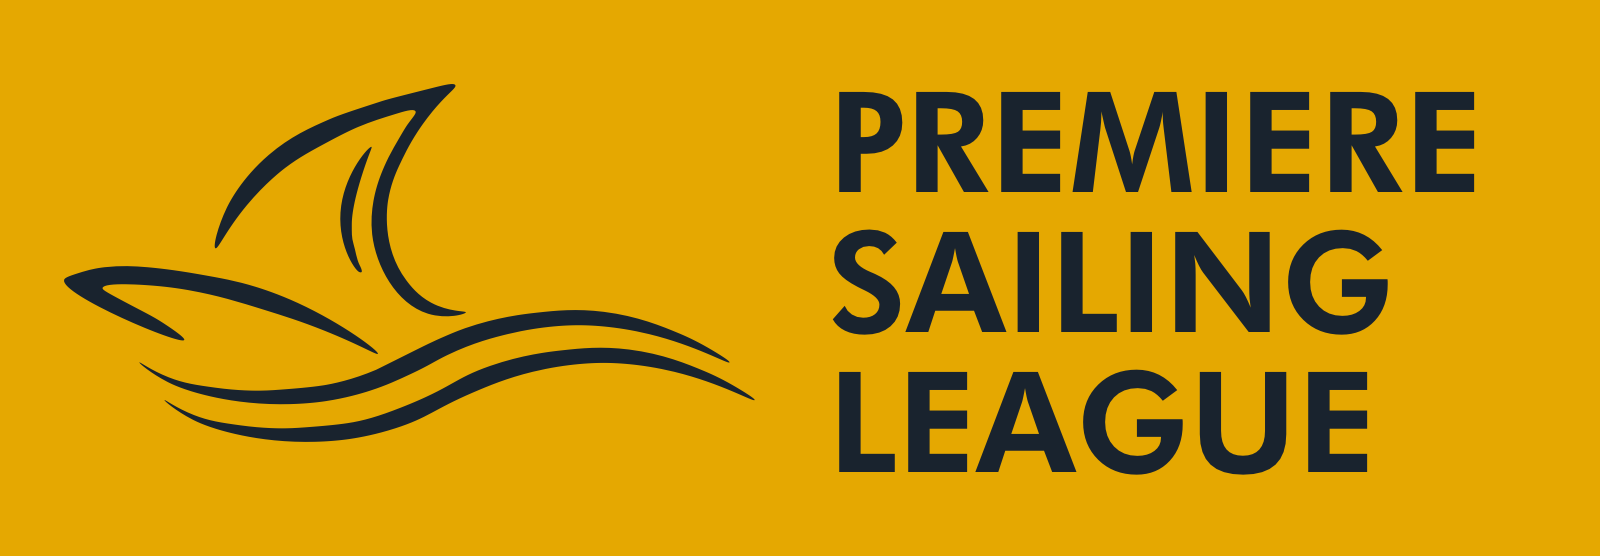 Premiere Sailing League